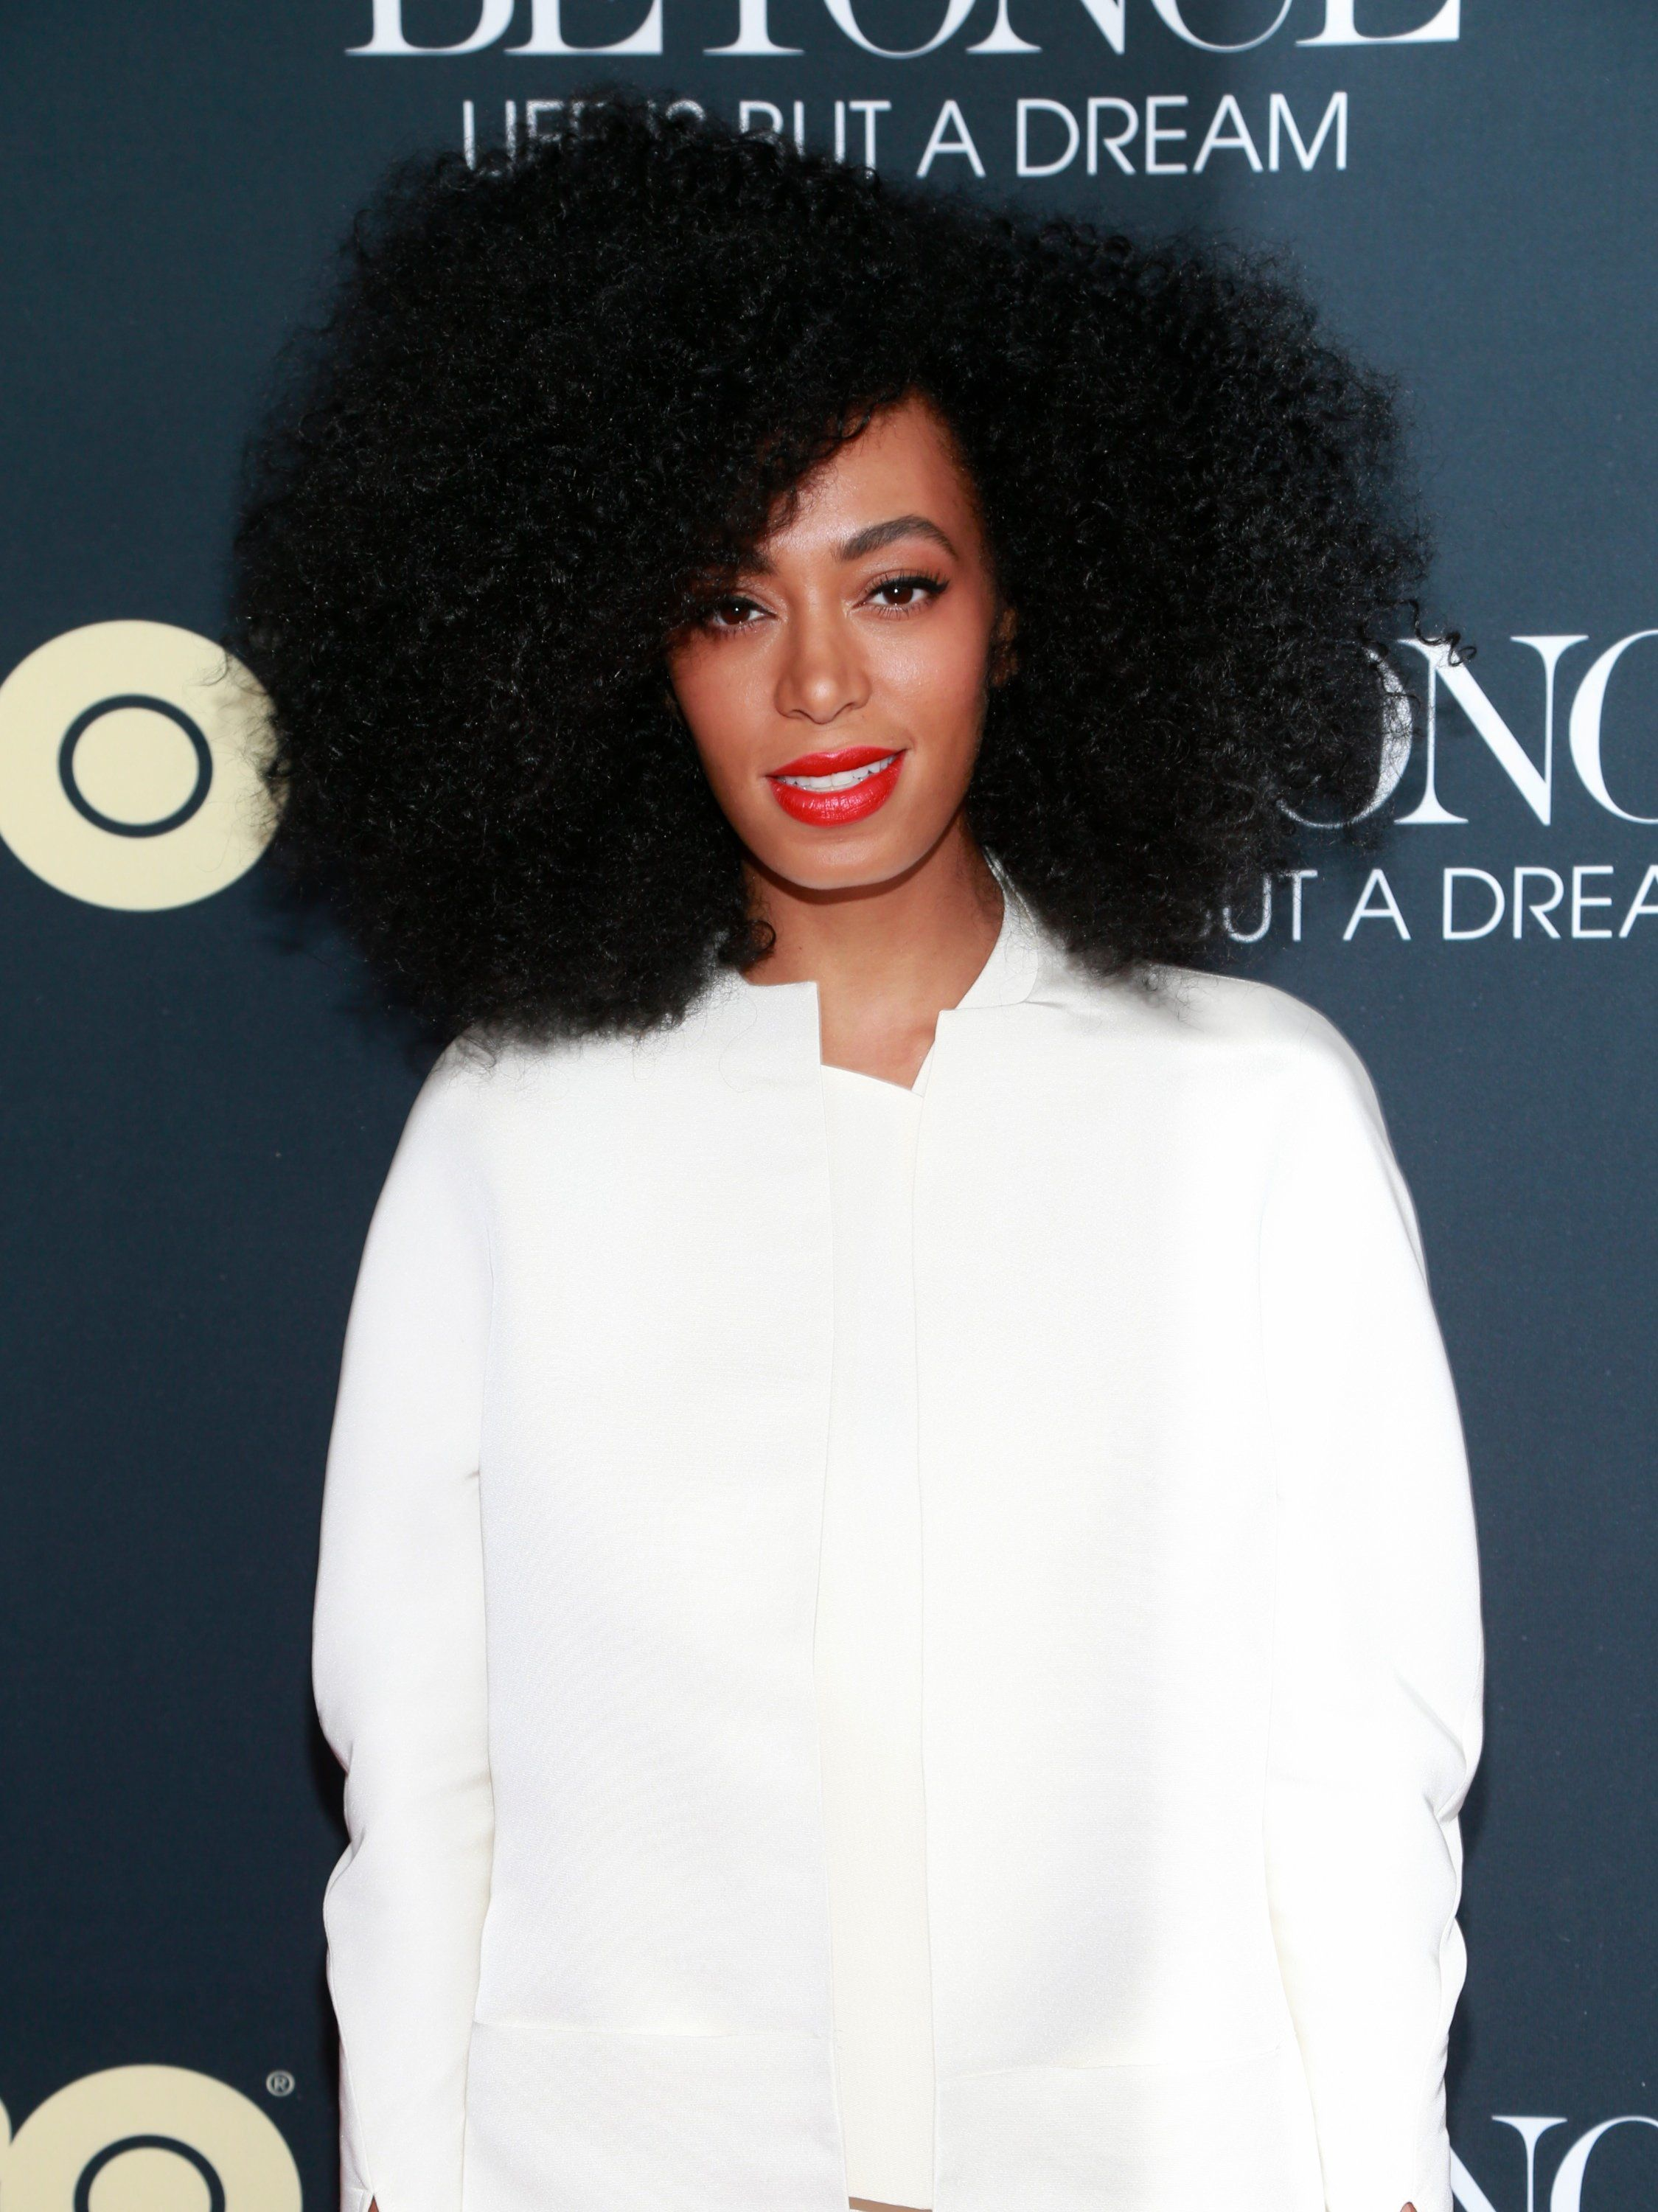 NEW YORK, NY - FEBRUARY 12:  Singer/songwriter Solange Knowles arrives at 'Beyonce: Life Is But A Dream' New York Premiere at Ziegfeld Theater on February 12, 2013 in New York City.  (Photo by Charles Eshelman/FilmMagic)